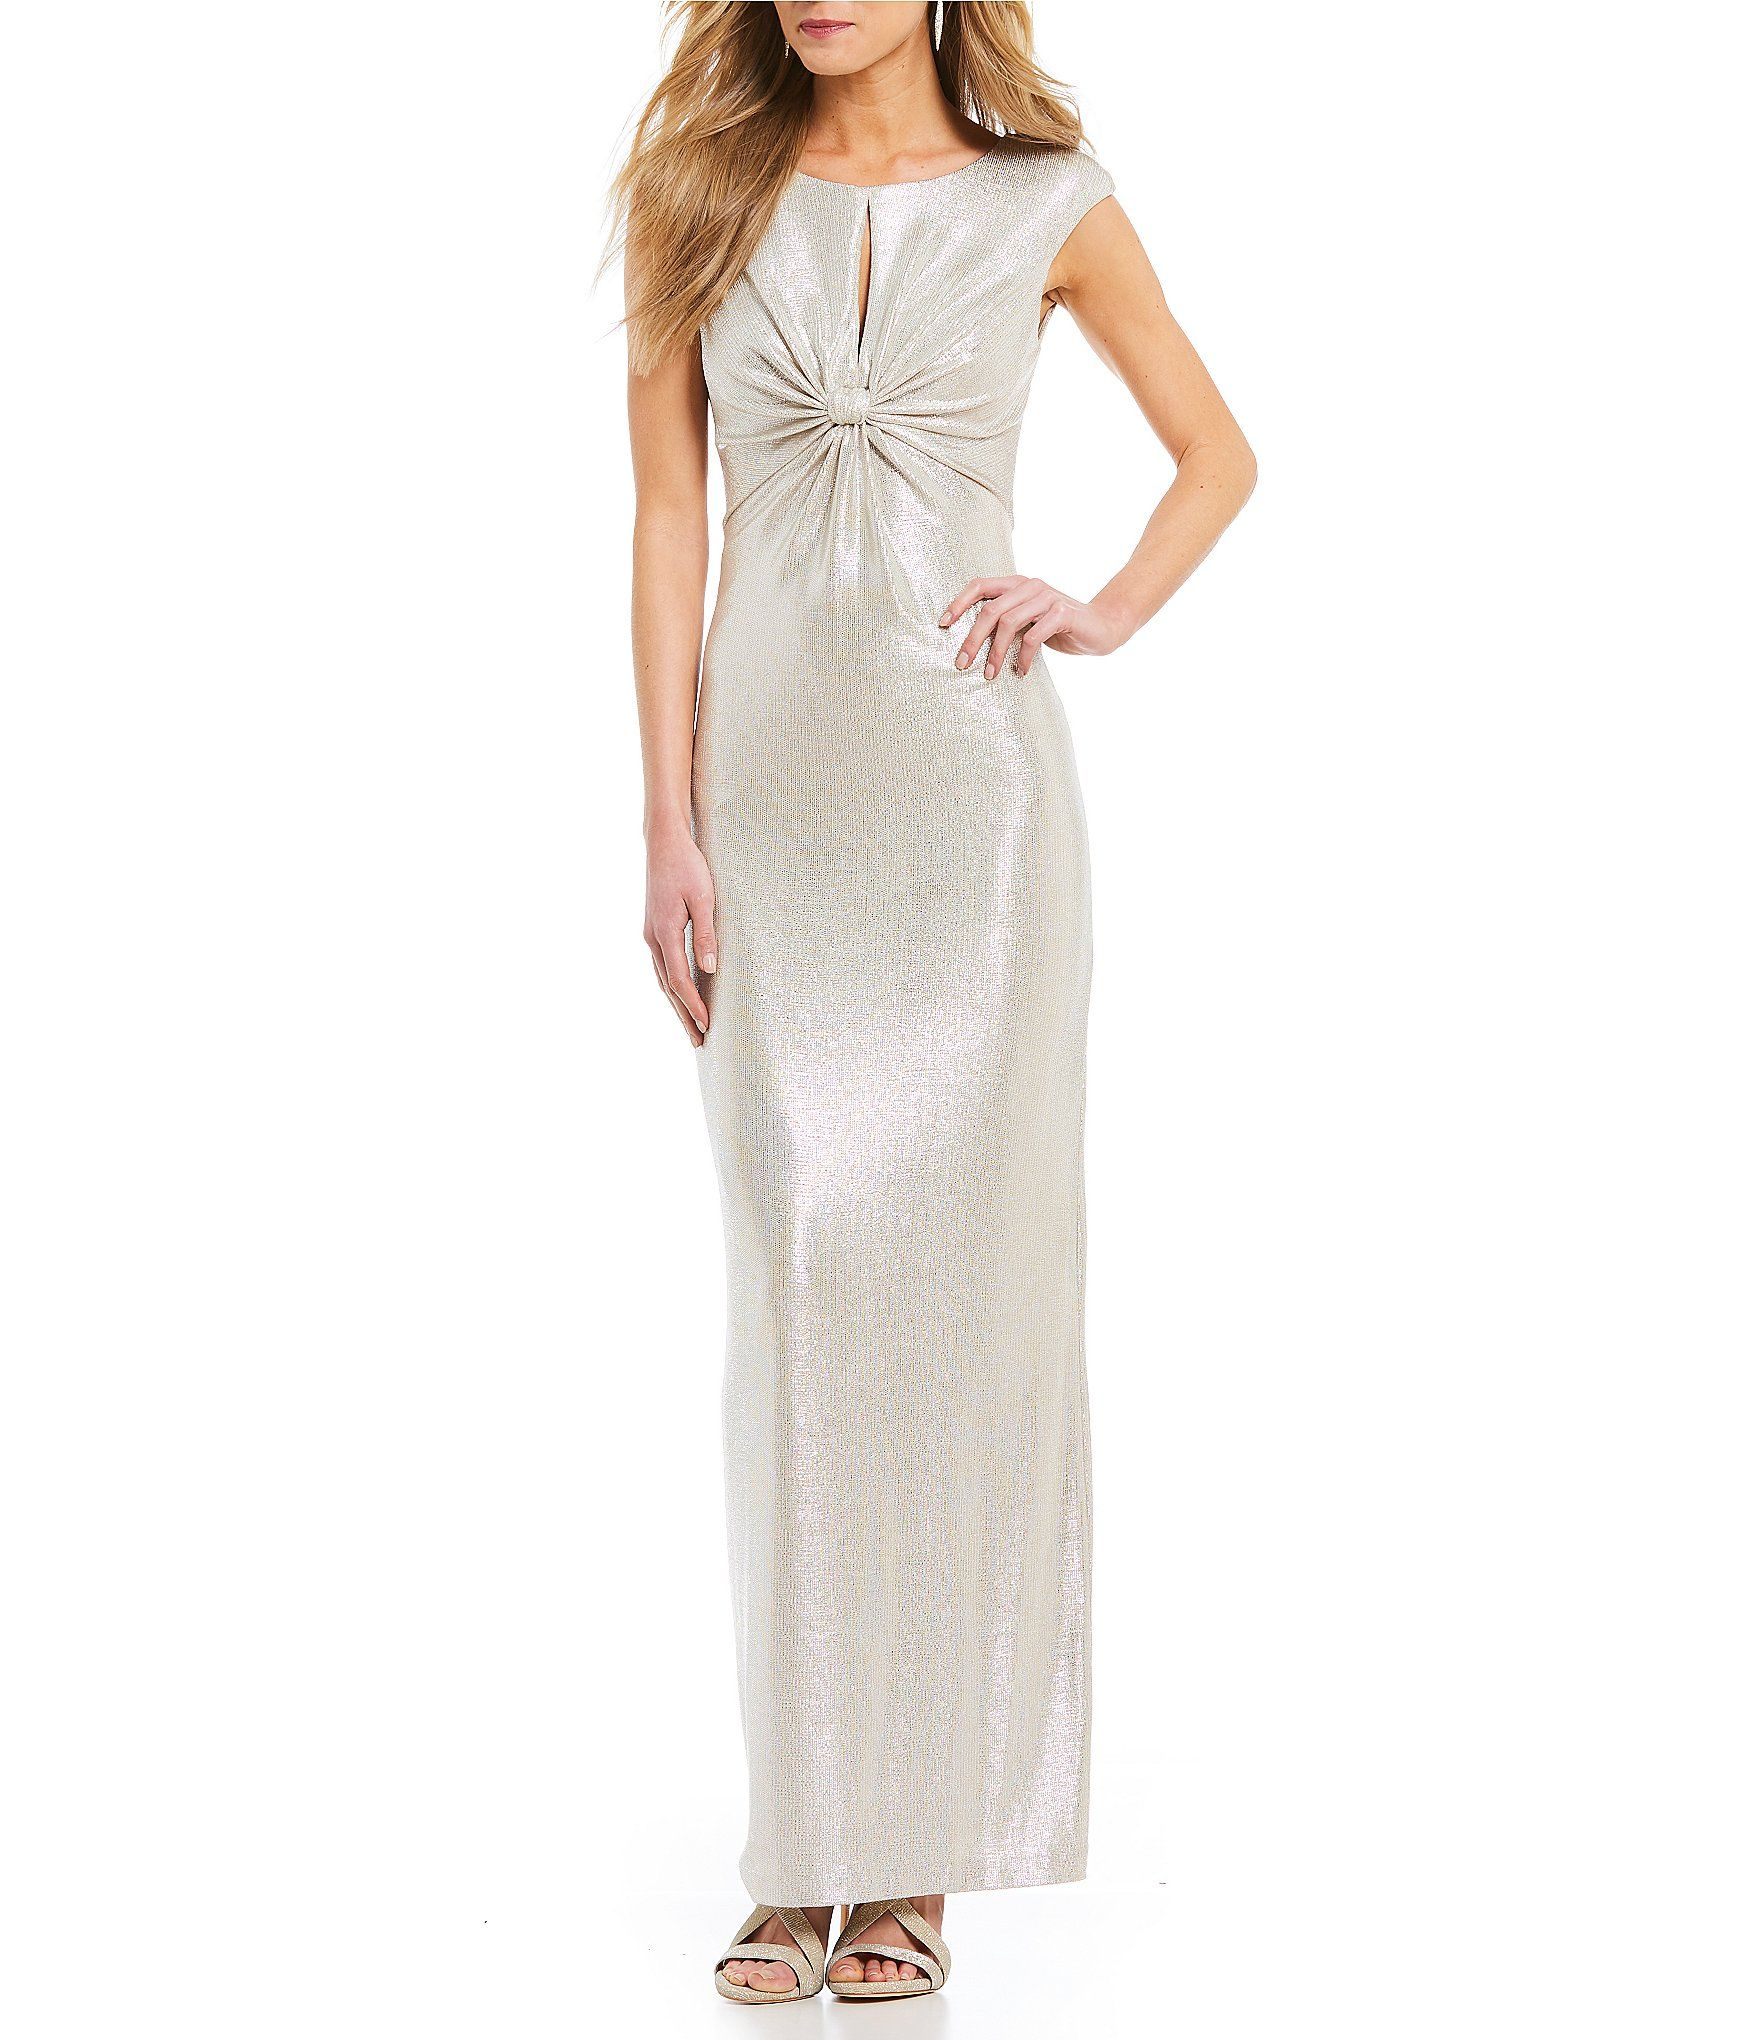 Vince Camuto Keyhole Front Knot Metallic Gown #Dillards   Dresses ...